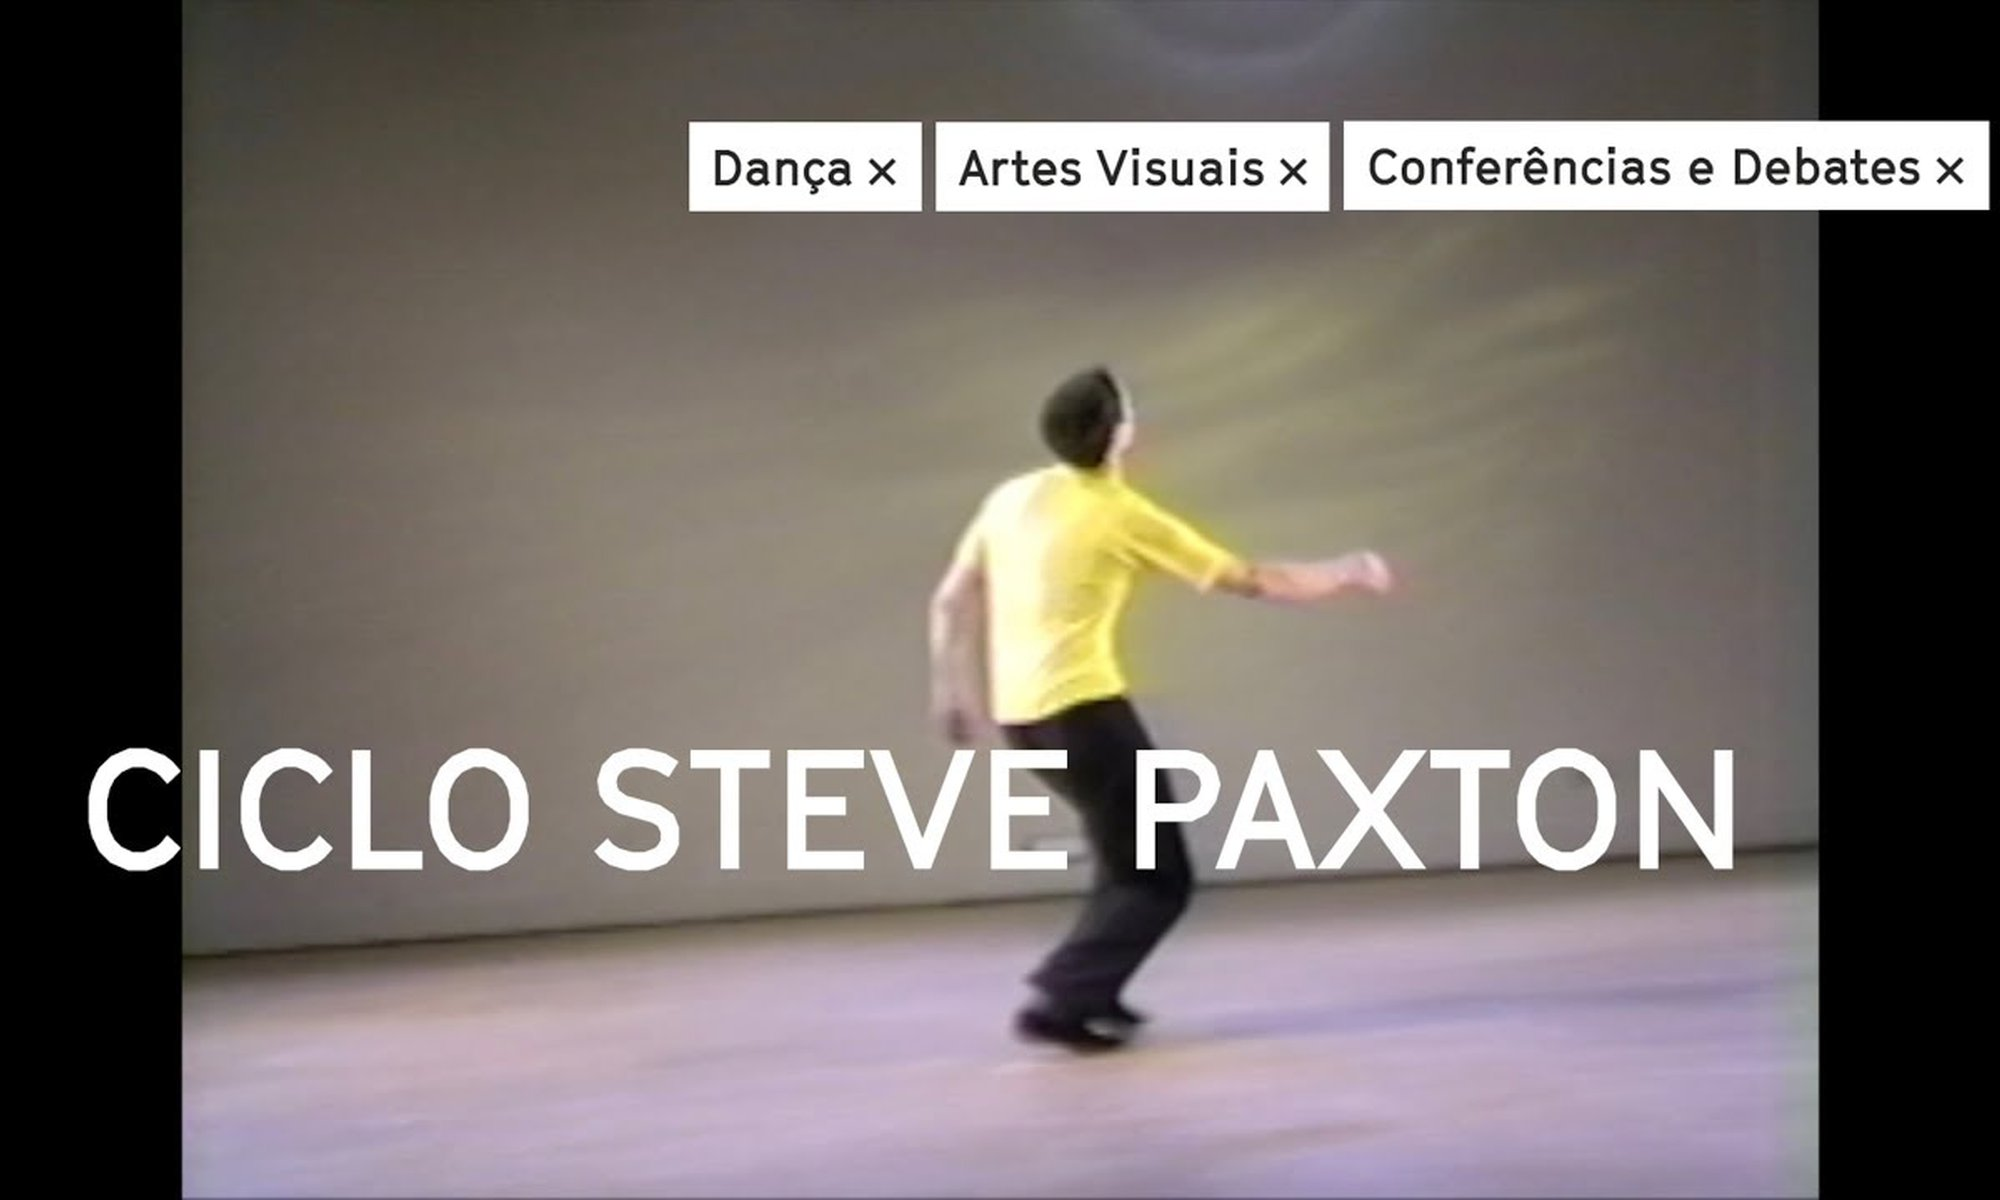 Ciclo Steve Paxton na Culturgest